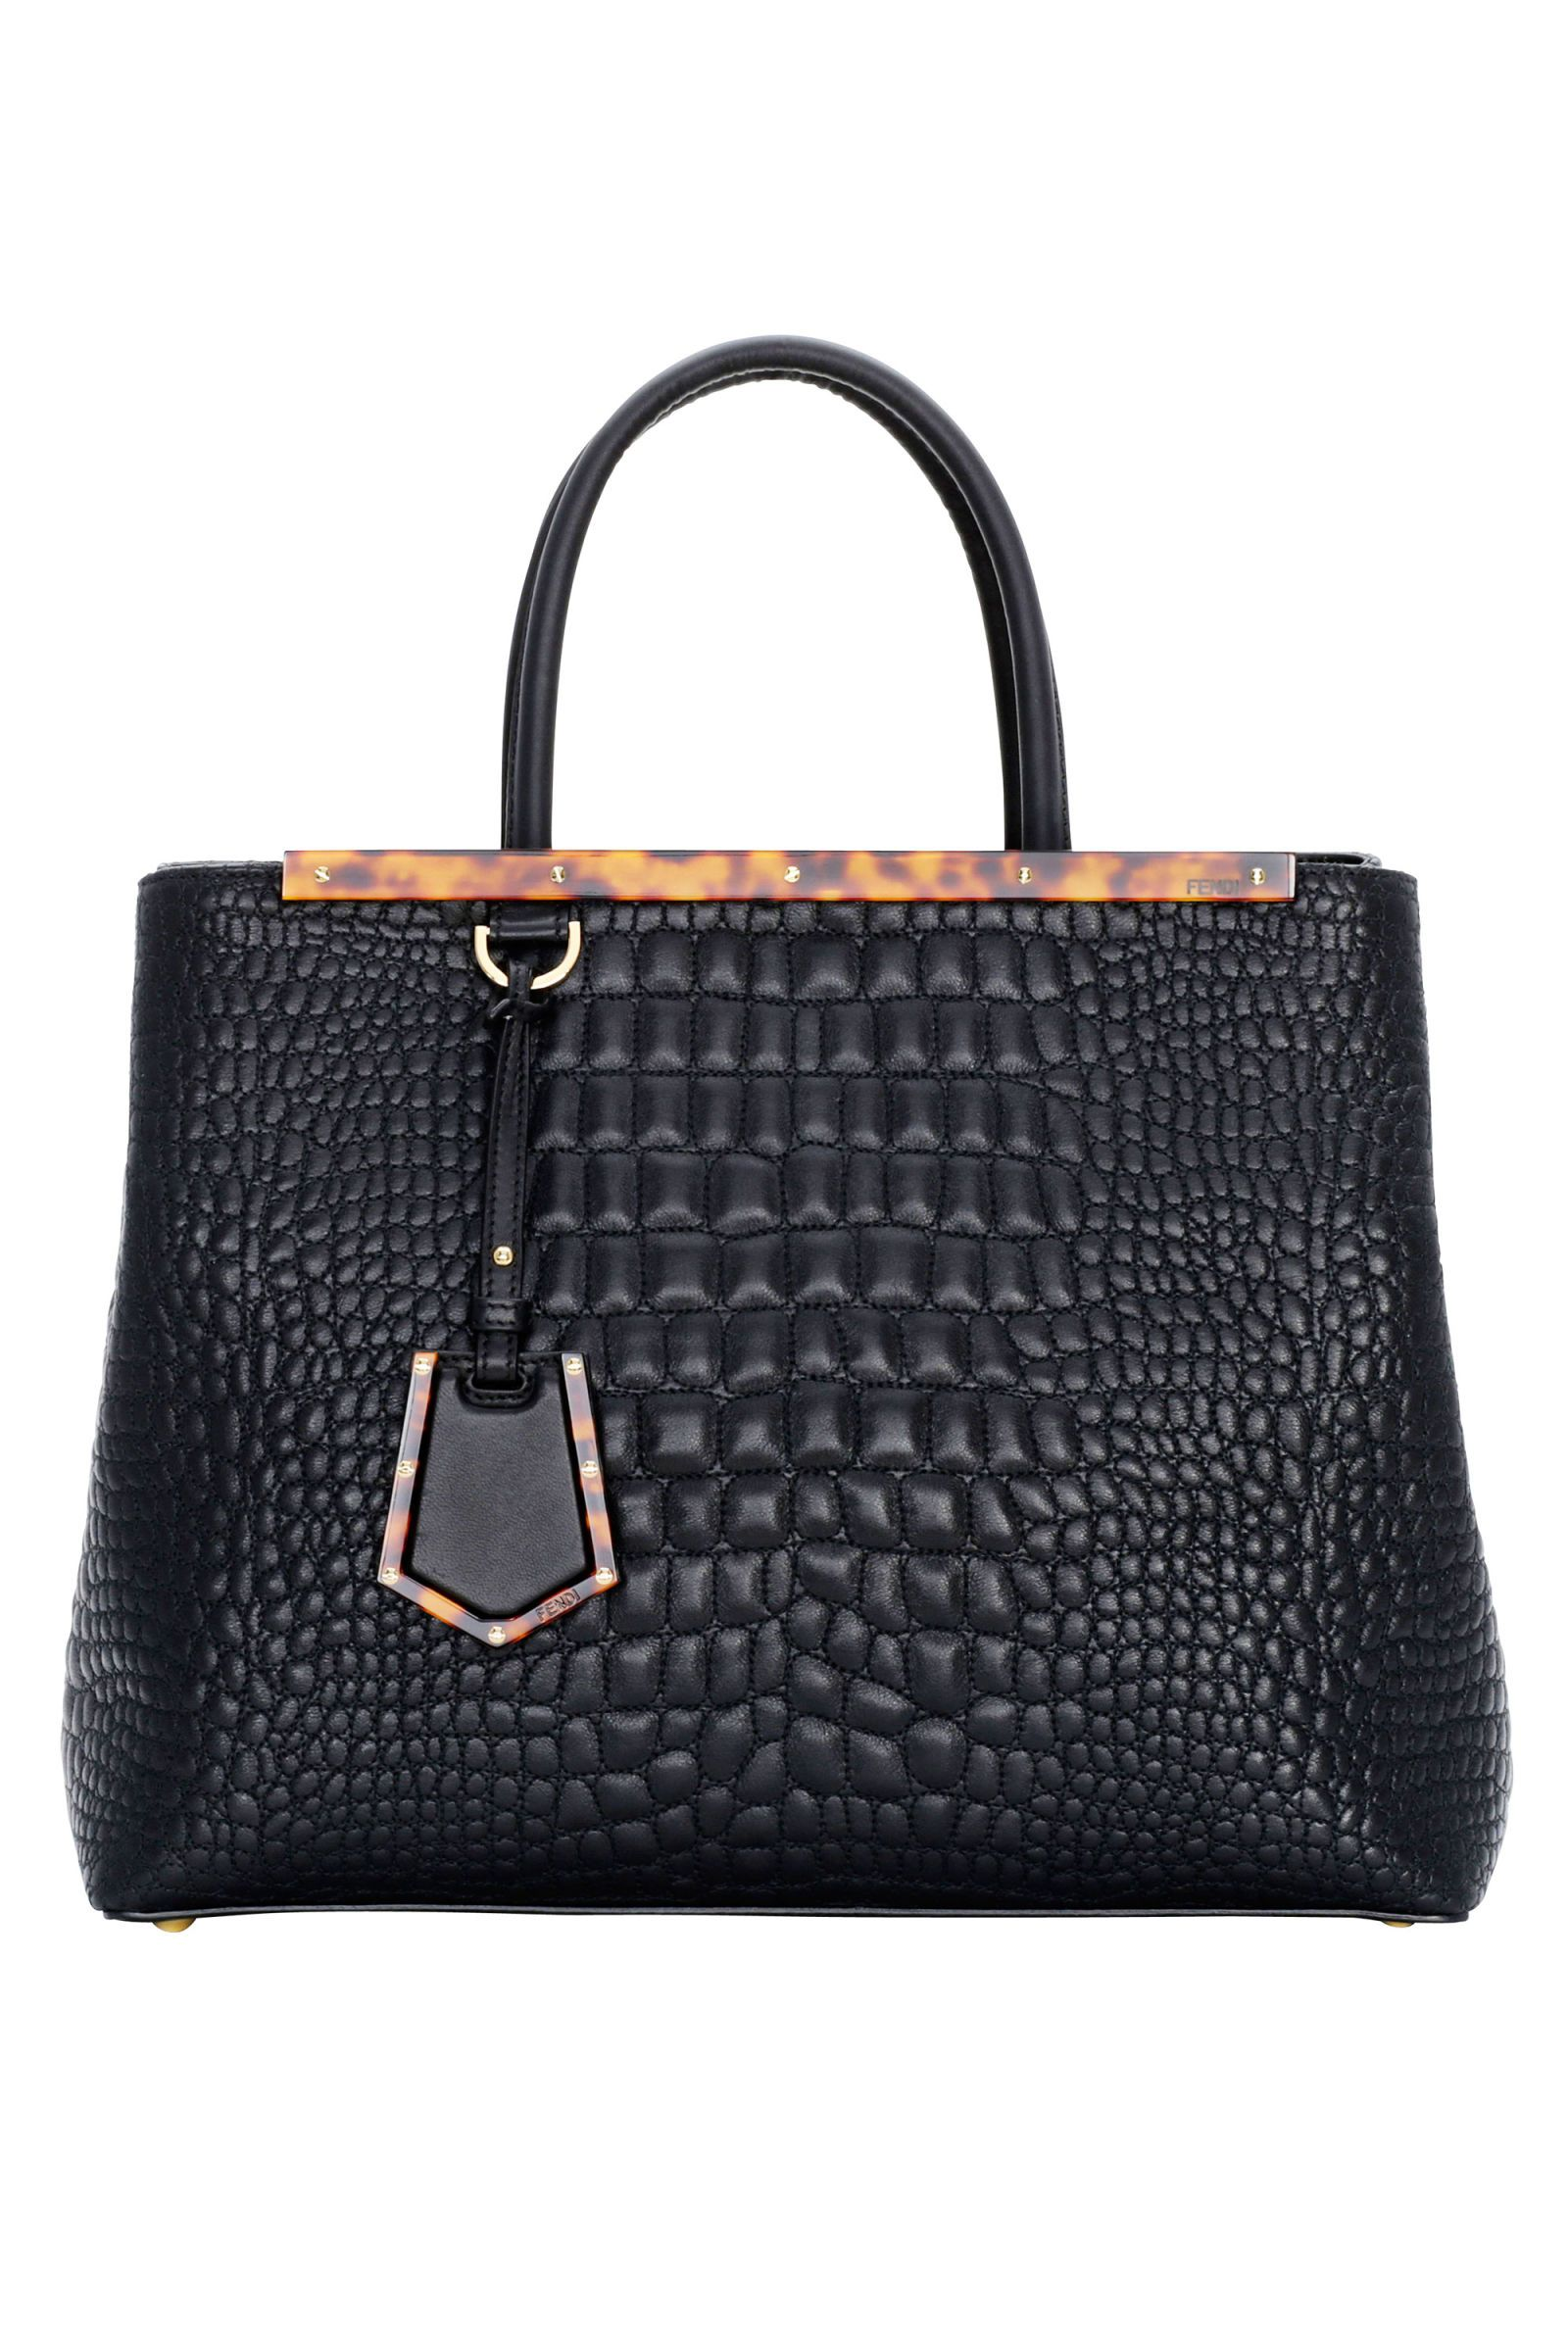 280d3b6f7ab 10 Designer Bags Every Woman Should Own   It's in the bag   Bags ...